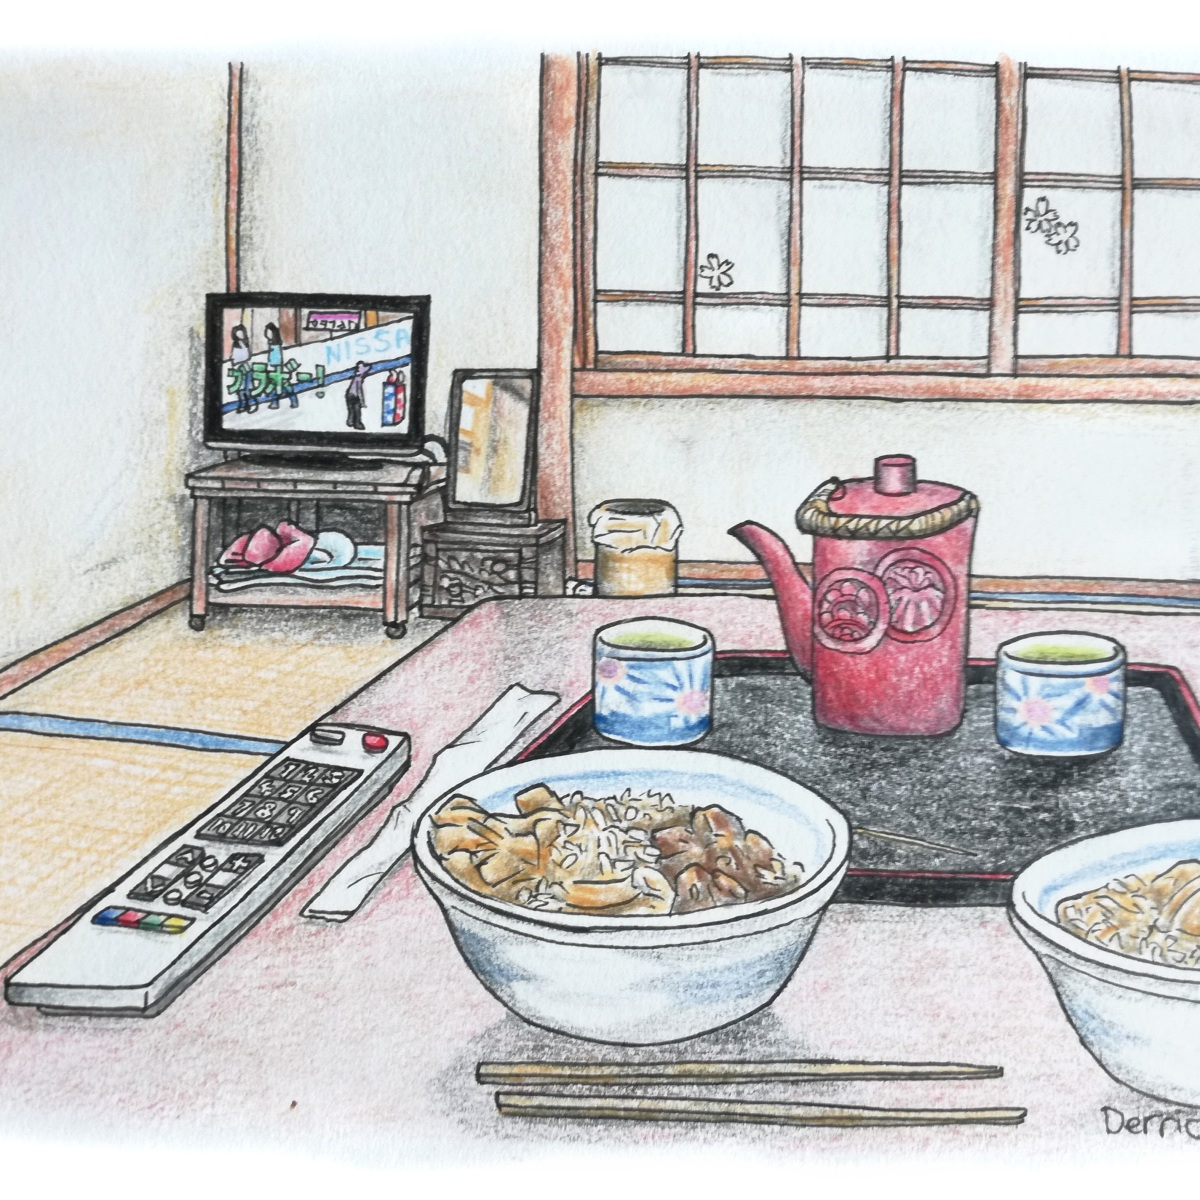 Sketch of two bowls of rice and television in a ryokan with tatami mats